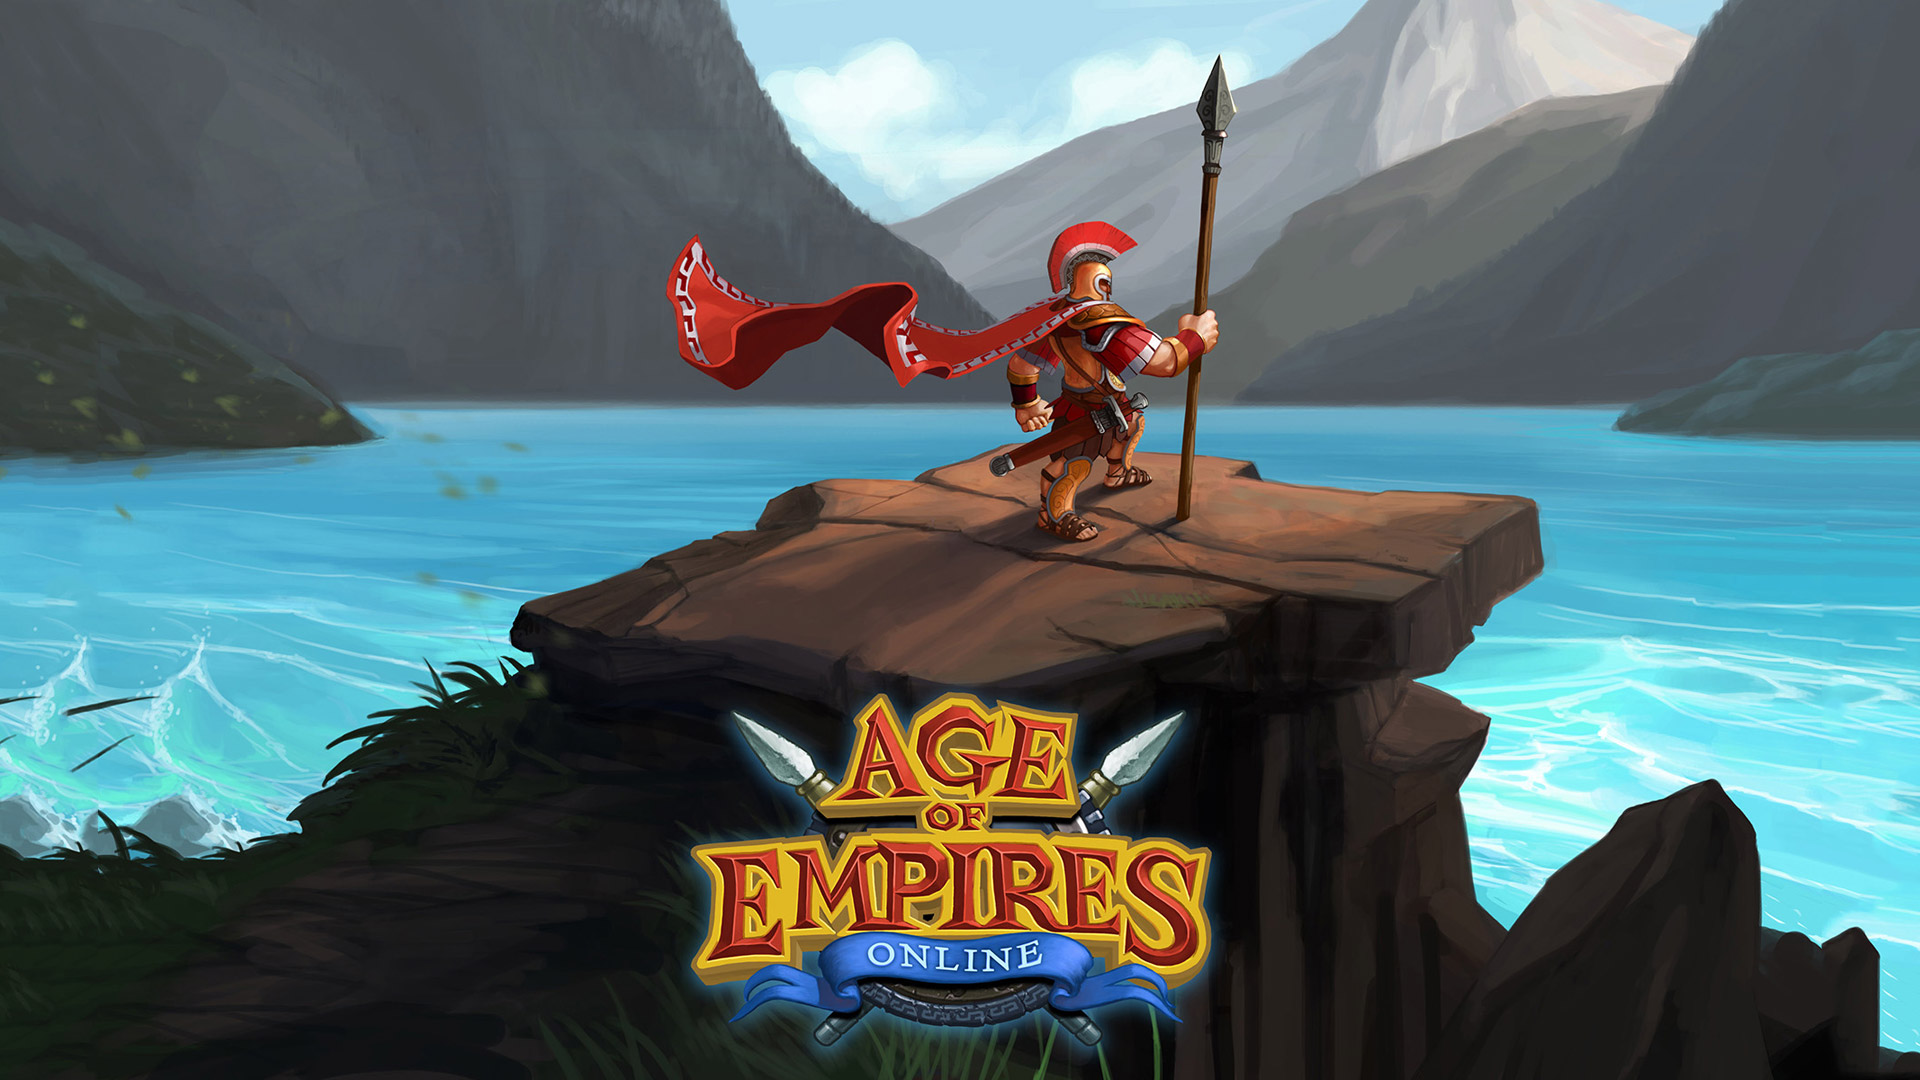 Free Age of Empires Online Wallpaper in 1920x1080